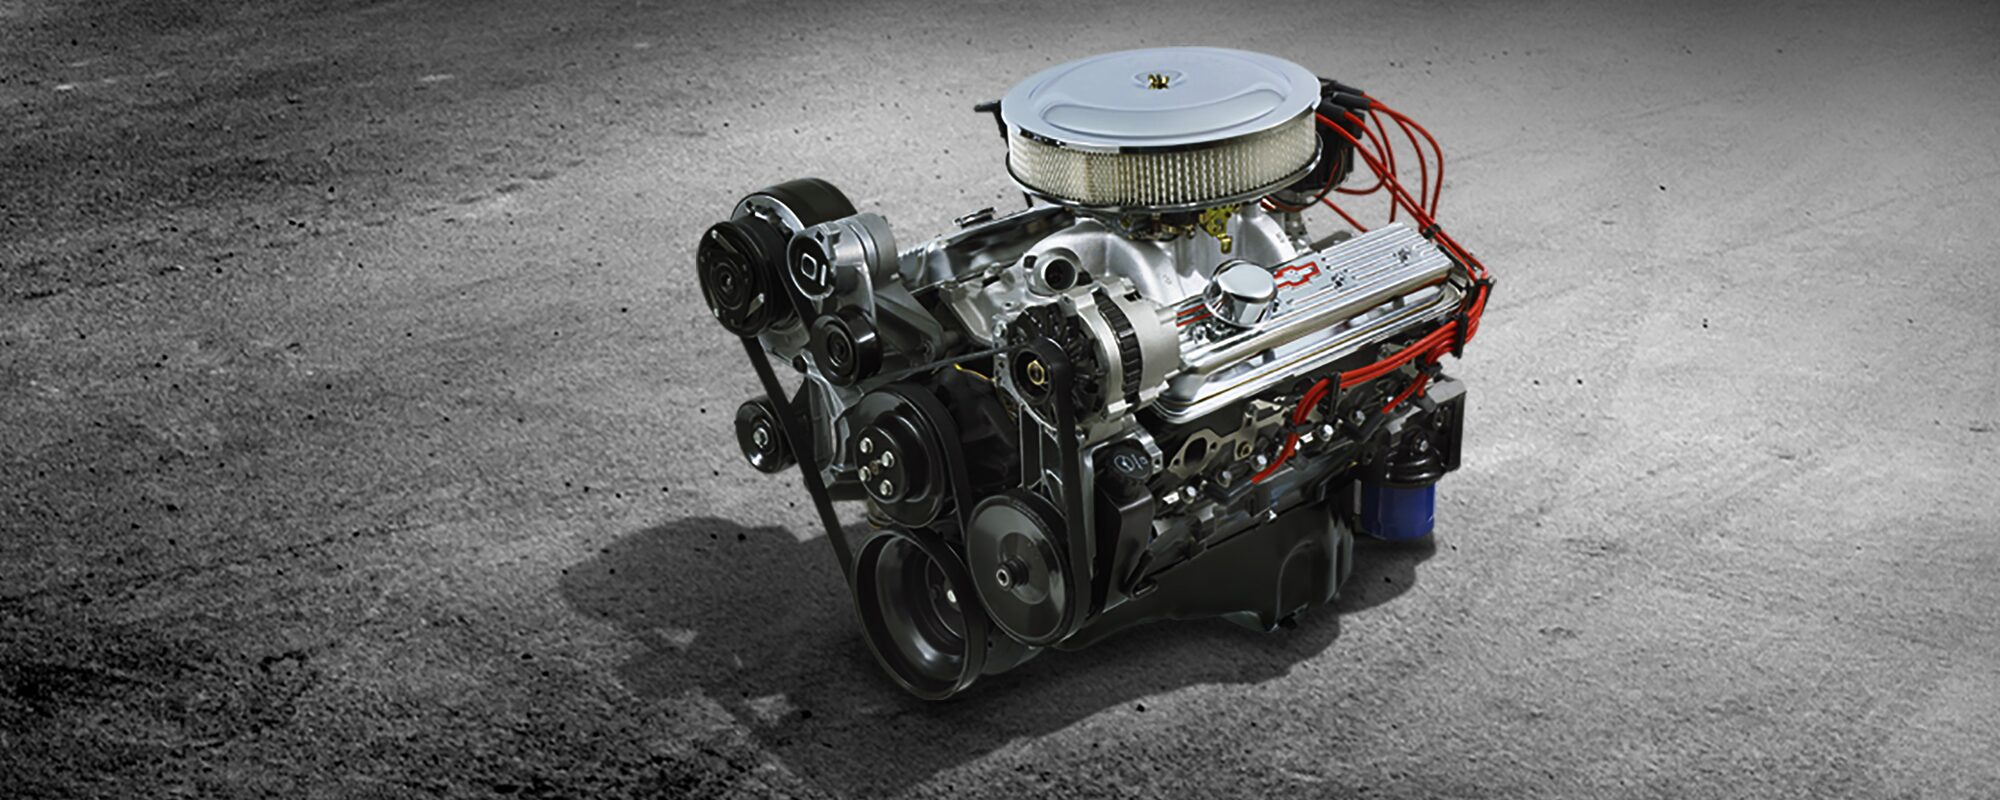 hight resolution of 350 ho small block crate engine chevrolet performance 1977 chevy small block motor wiring